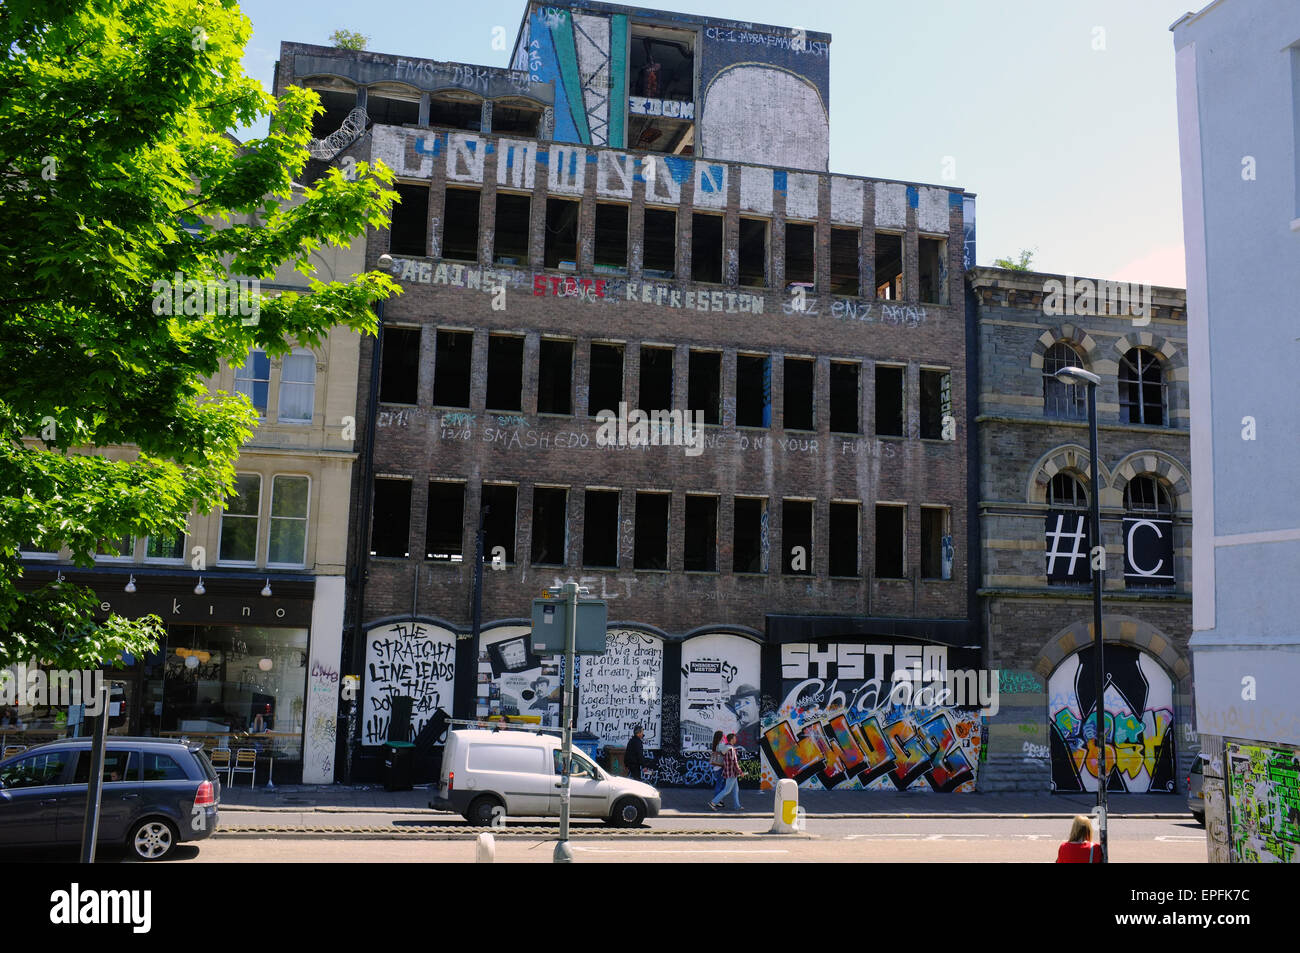 Westmoreland House in the Stokes Croft area of Bristol in the UK. - Stock Image